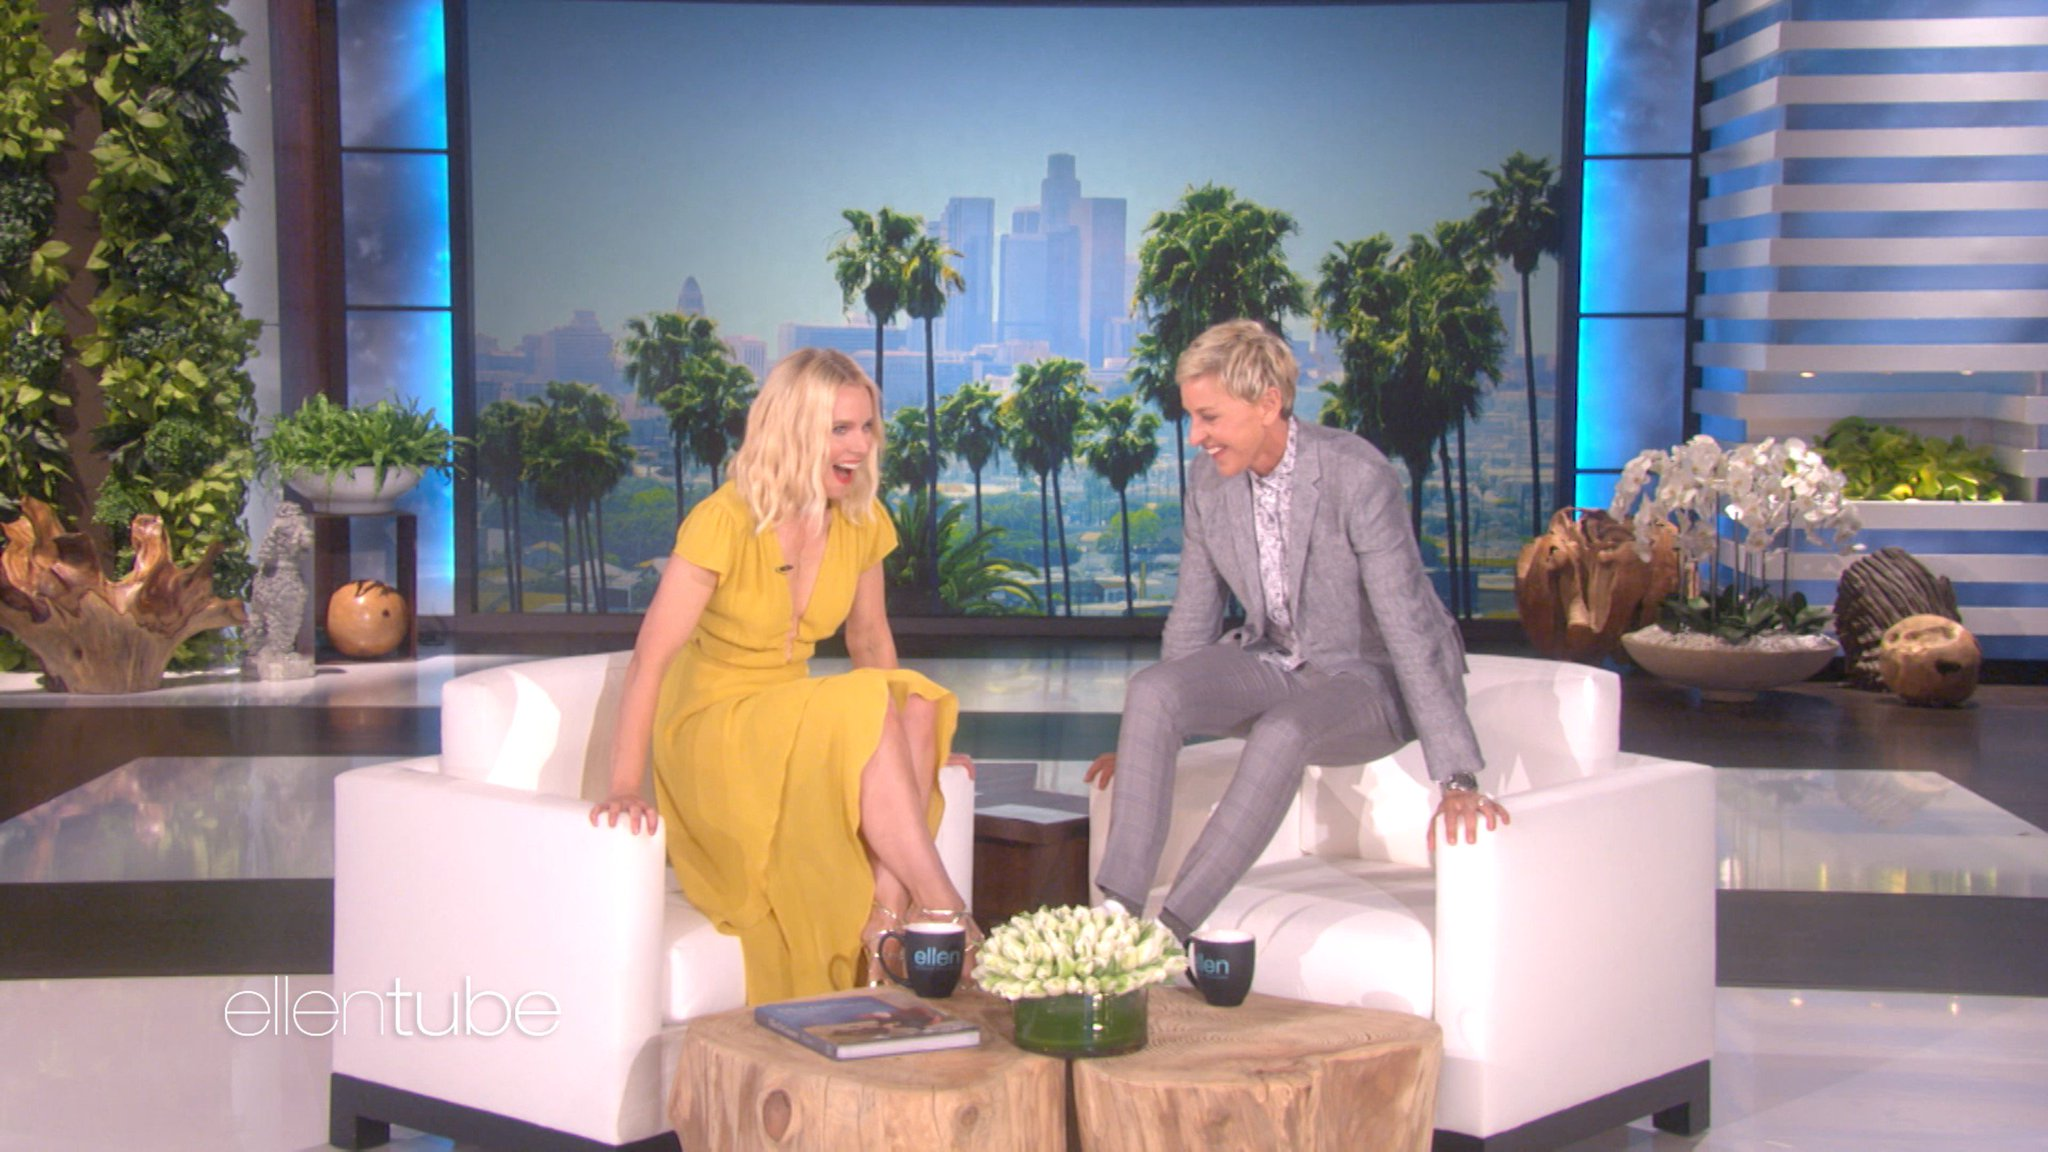 Happy birthday, @IMKristenBell! I love it every time you give me a ring. https://t.co/DZKqVQKhTh